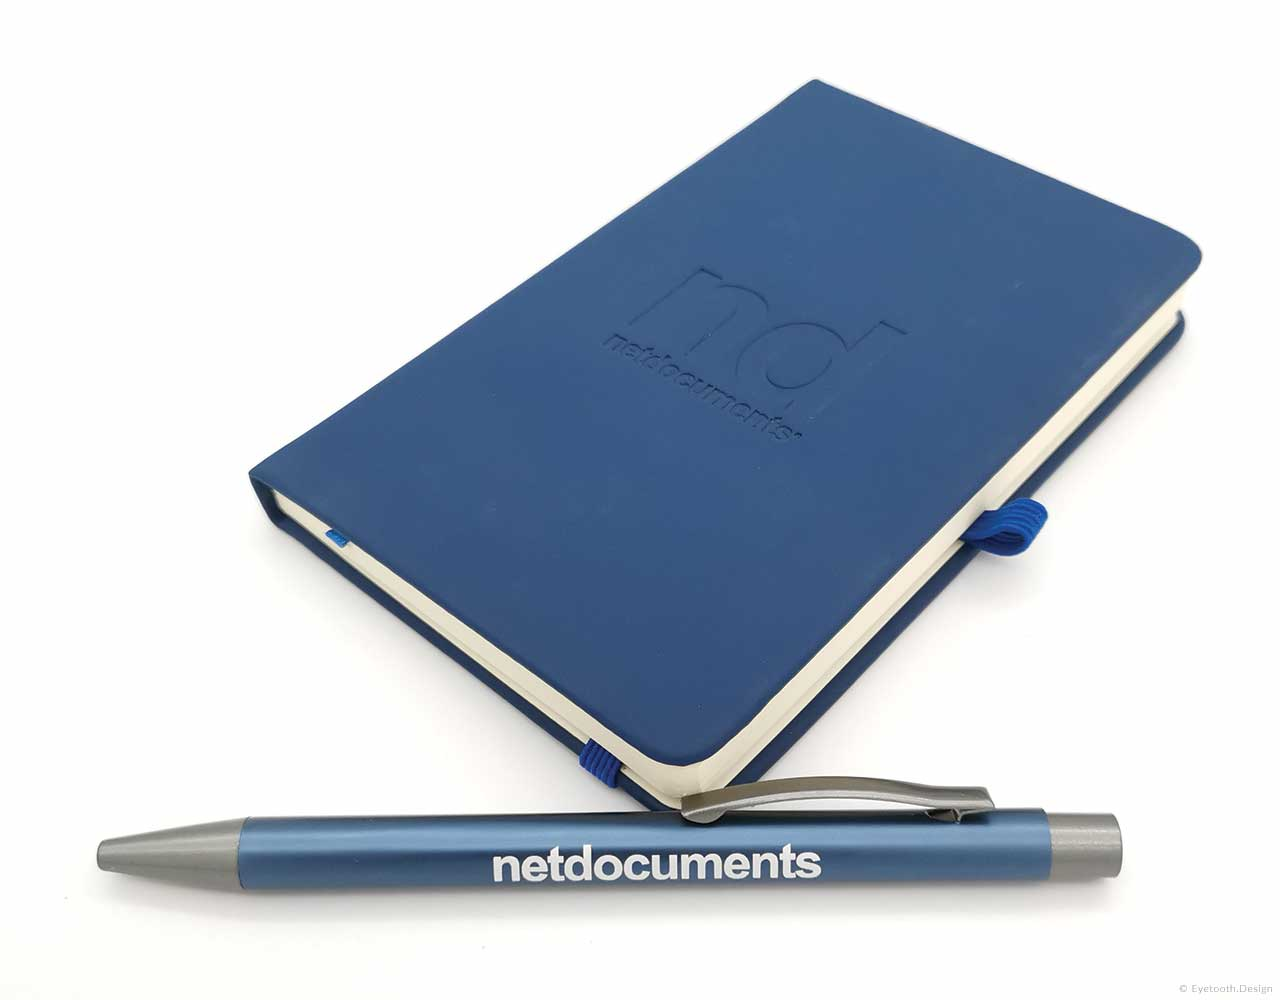 Branded pen & pad for Net Documents